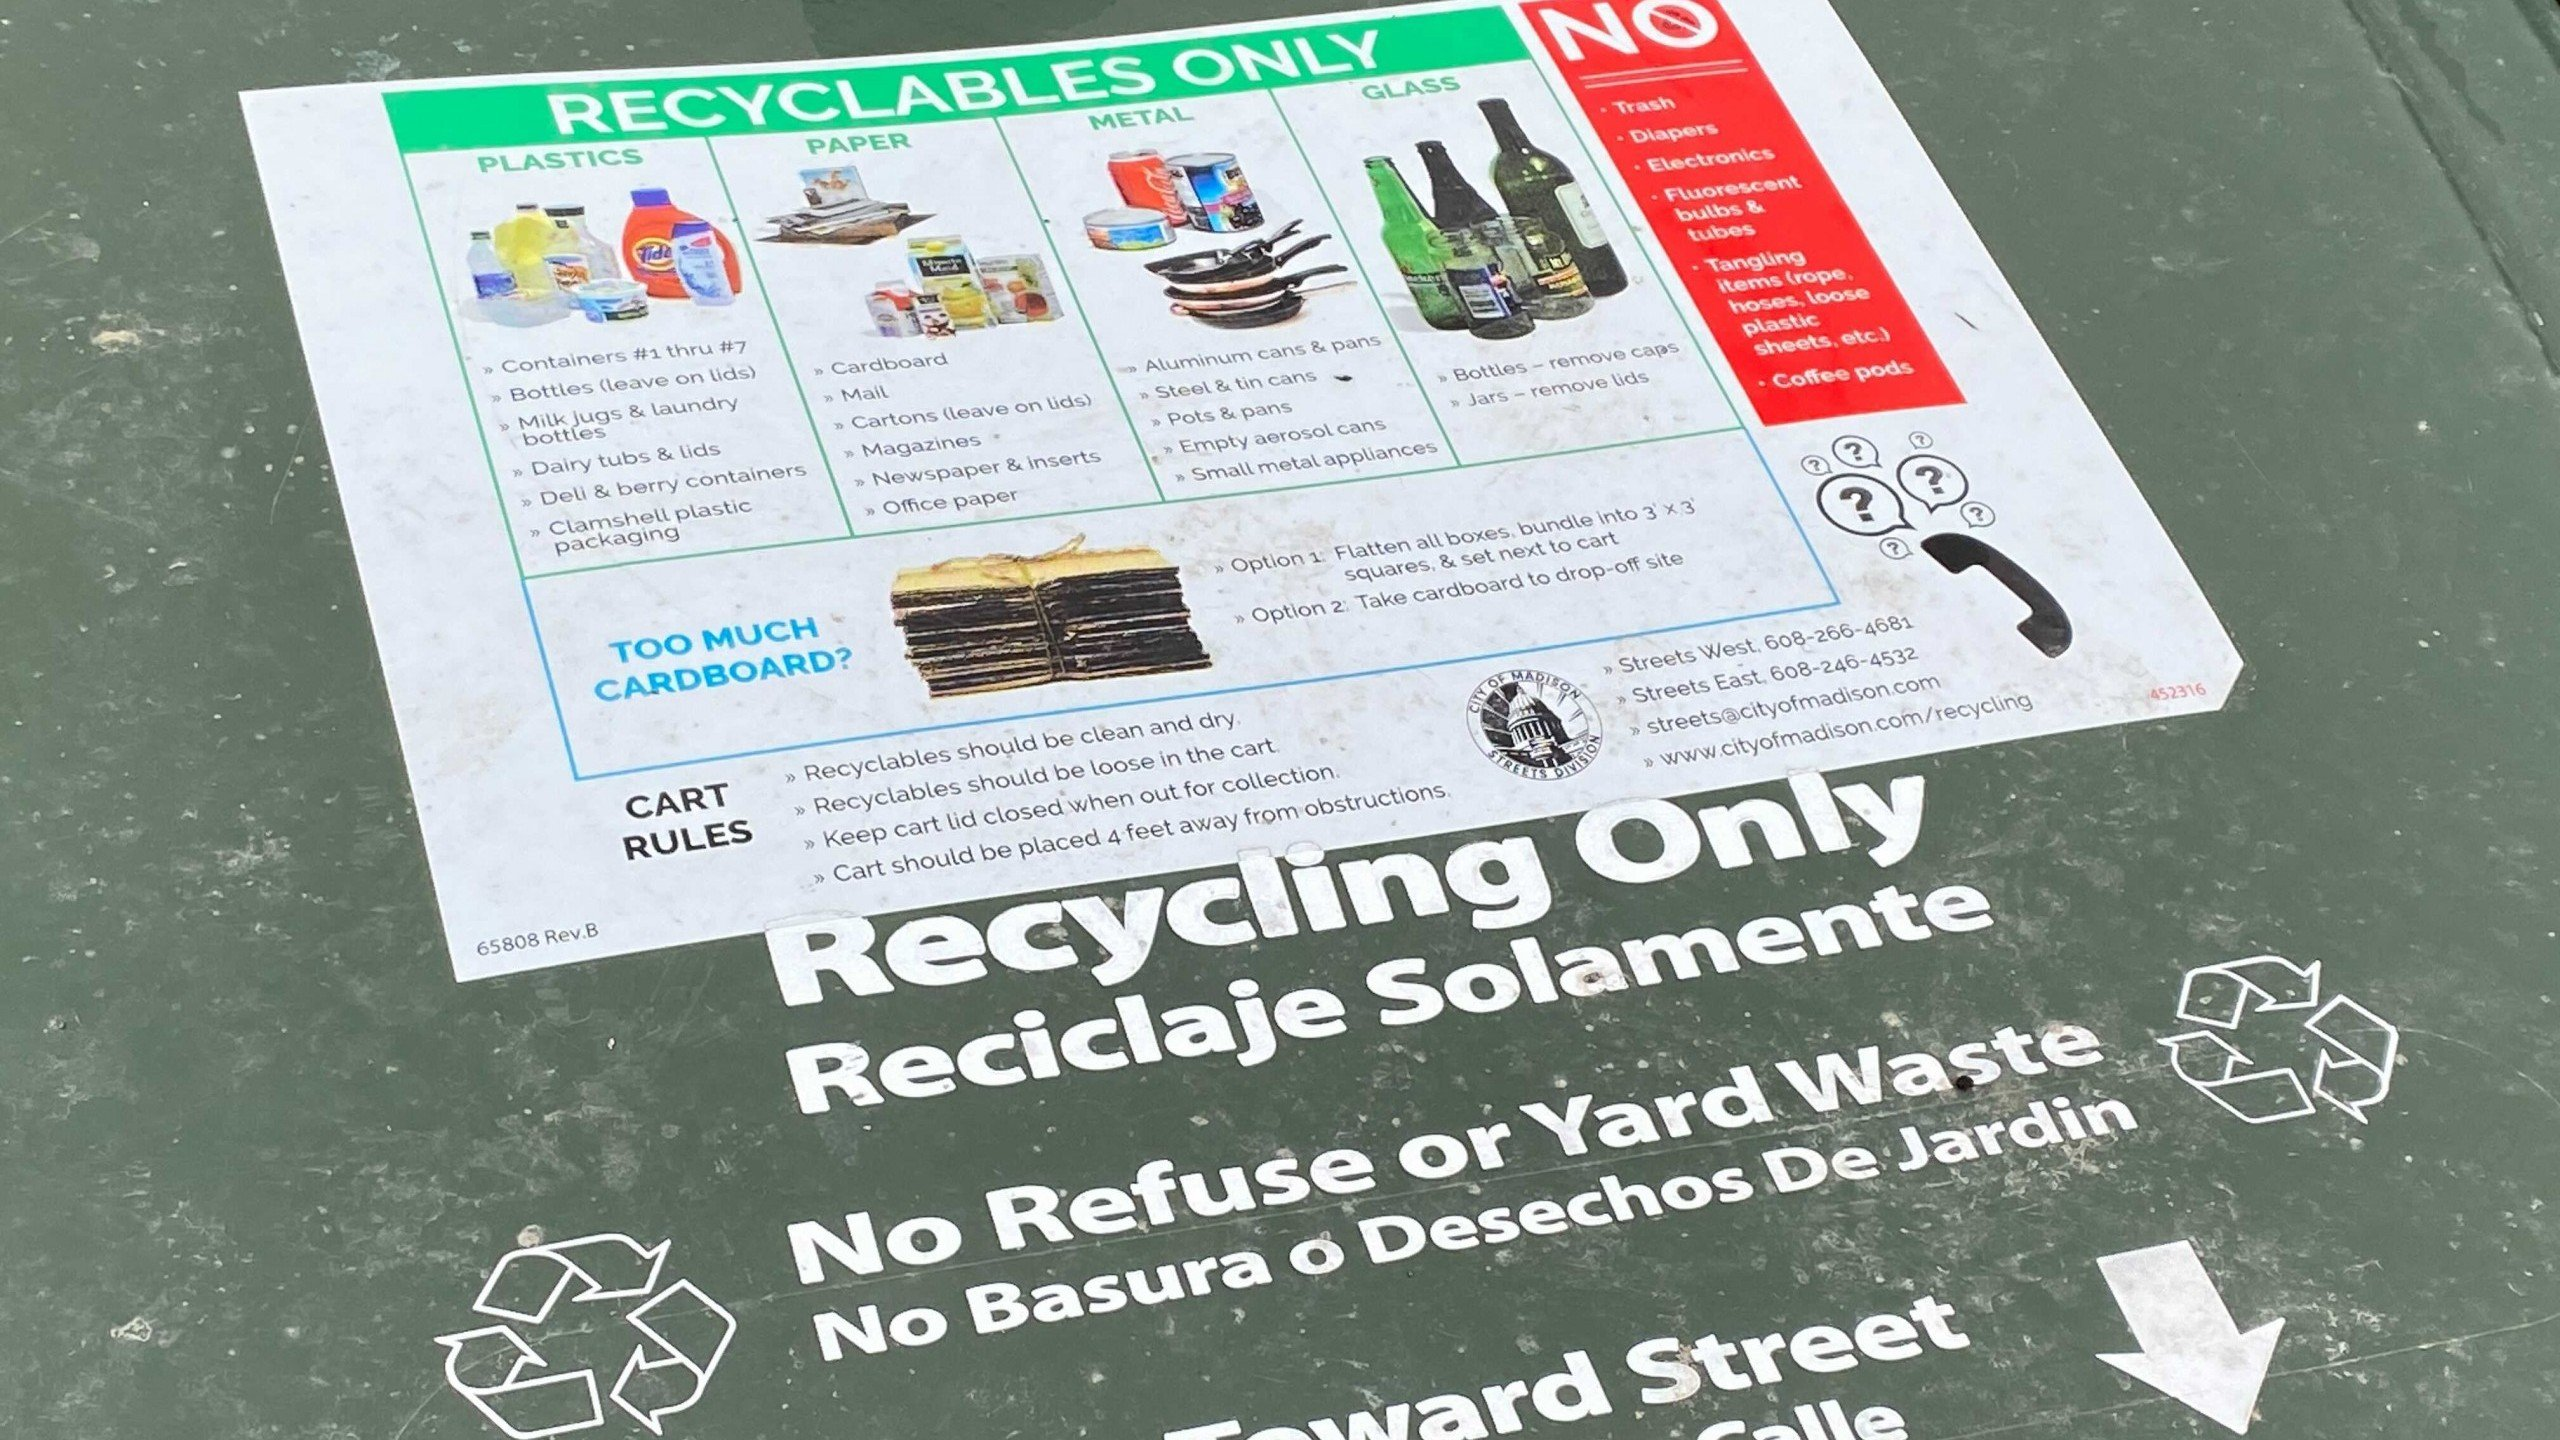 Plastic bags can no longer be recycled, city asks residents to avoid putting them in recycling bins